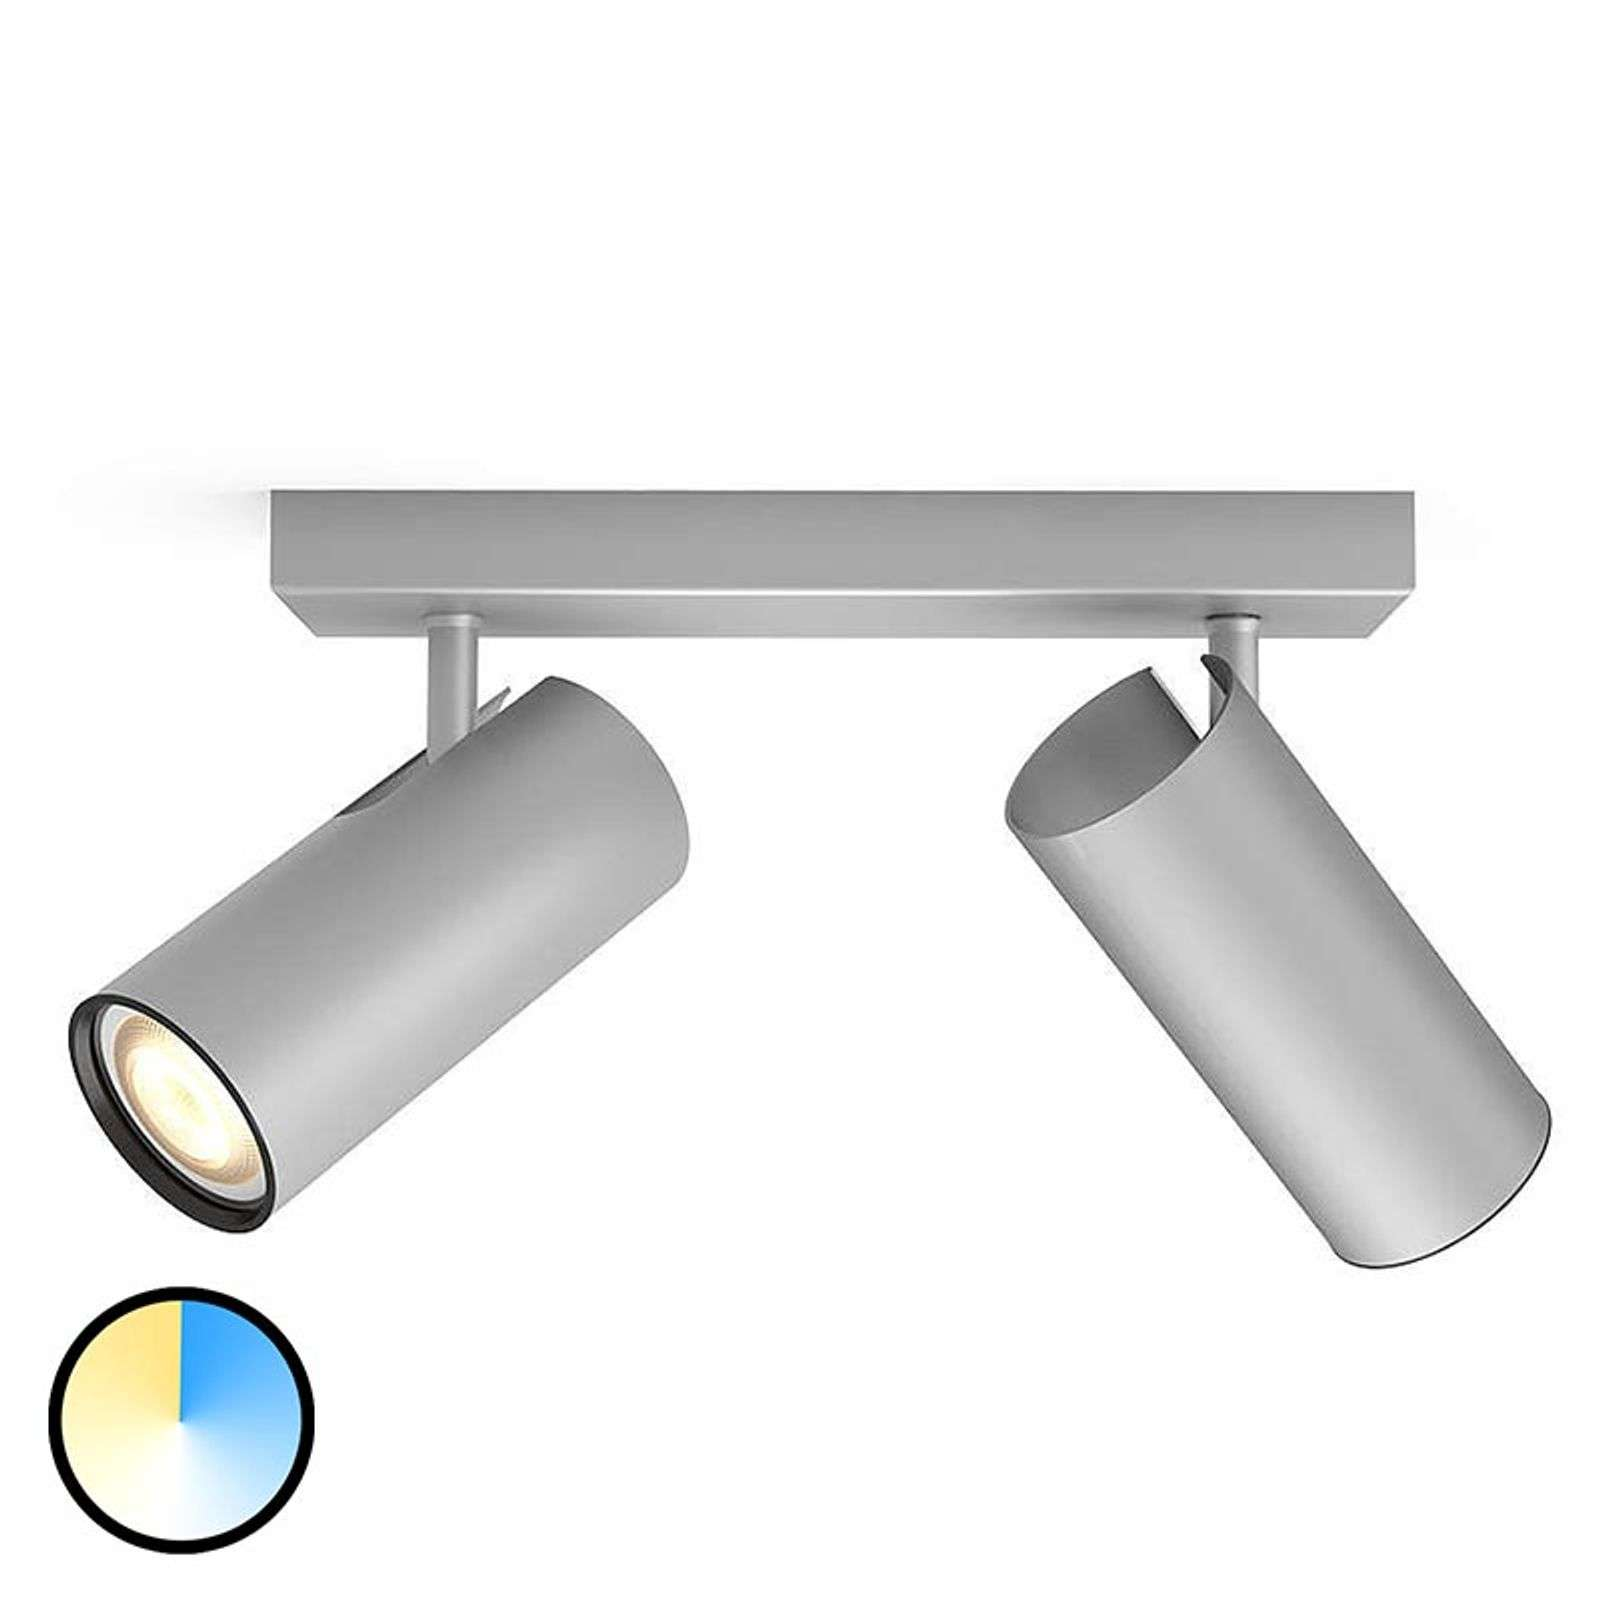 Foco LED aluminio Philips Hue Buratto 2 brazos